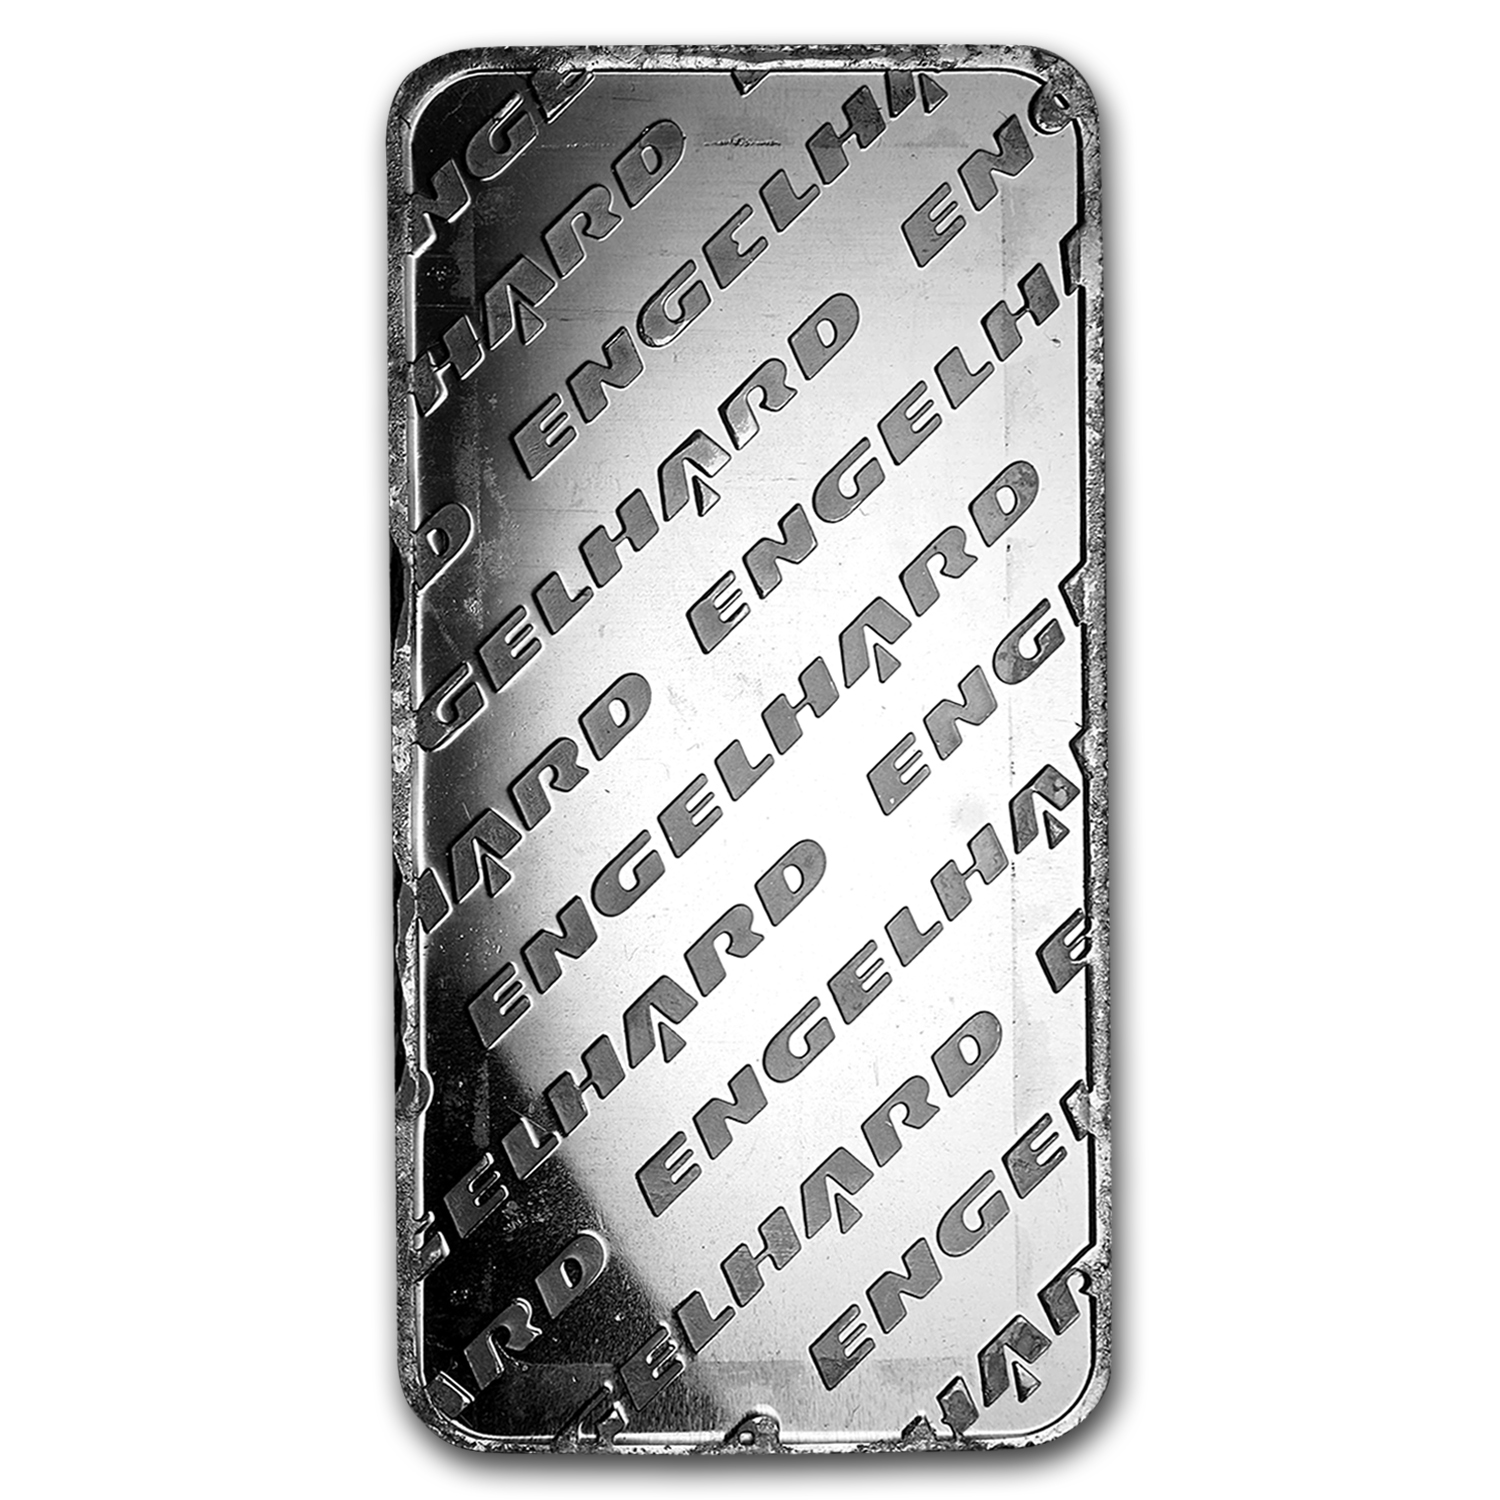 10 oz Platinum Bar - Engelhard